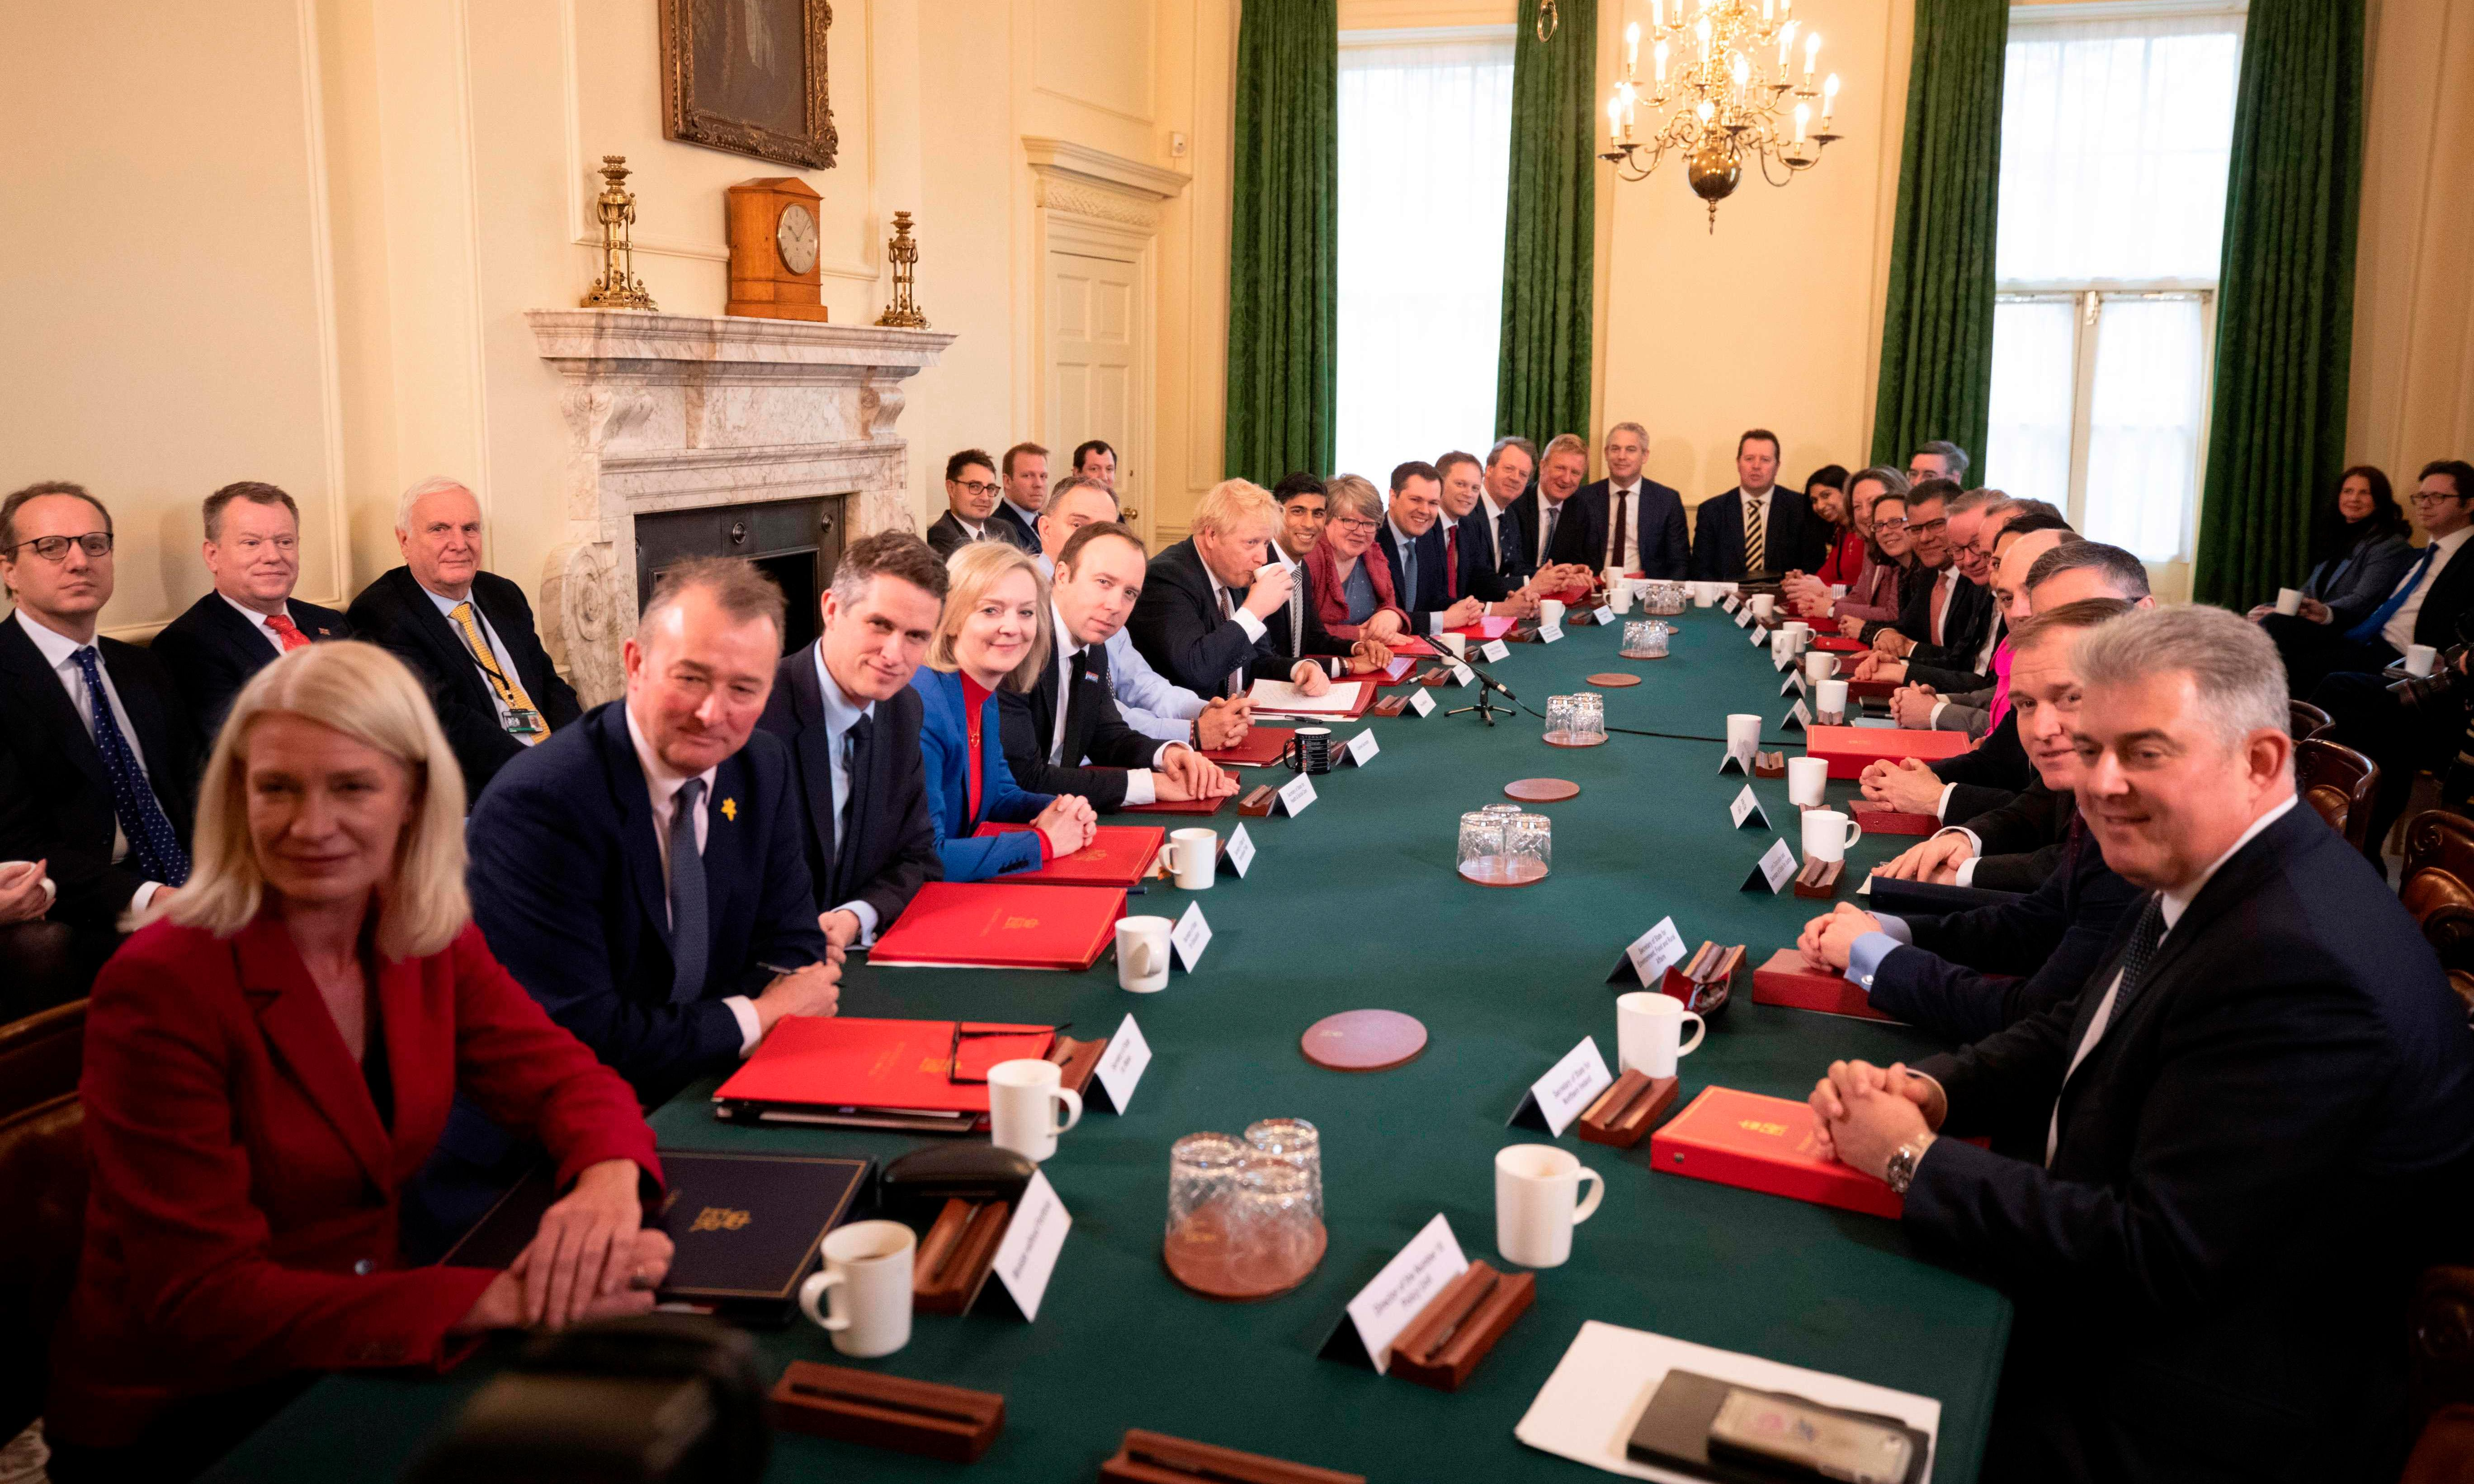 Boris Johnson's reshuffle was all about centralising power